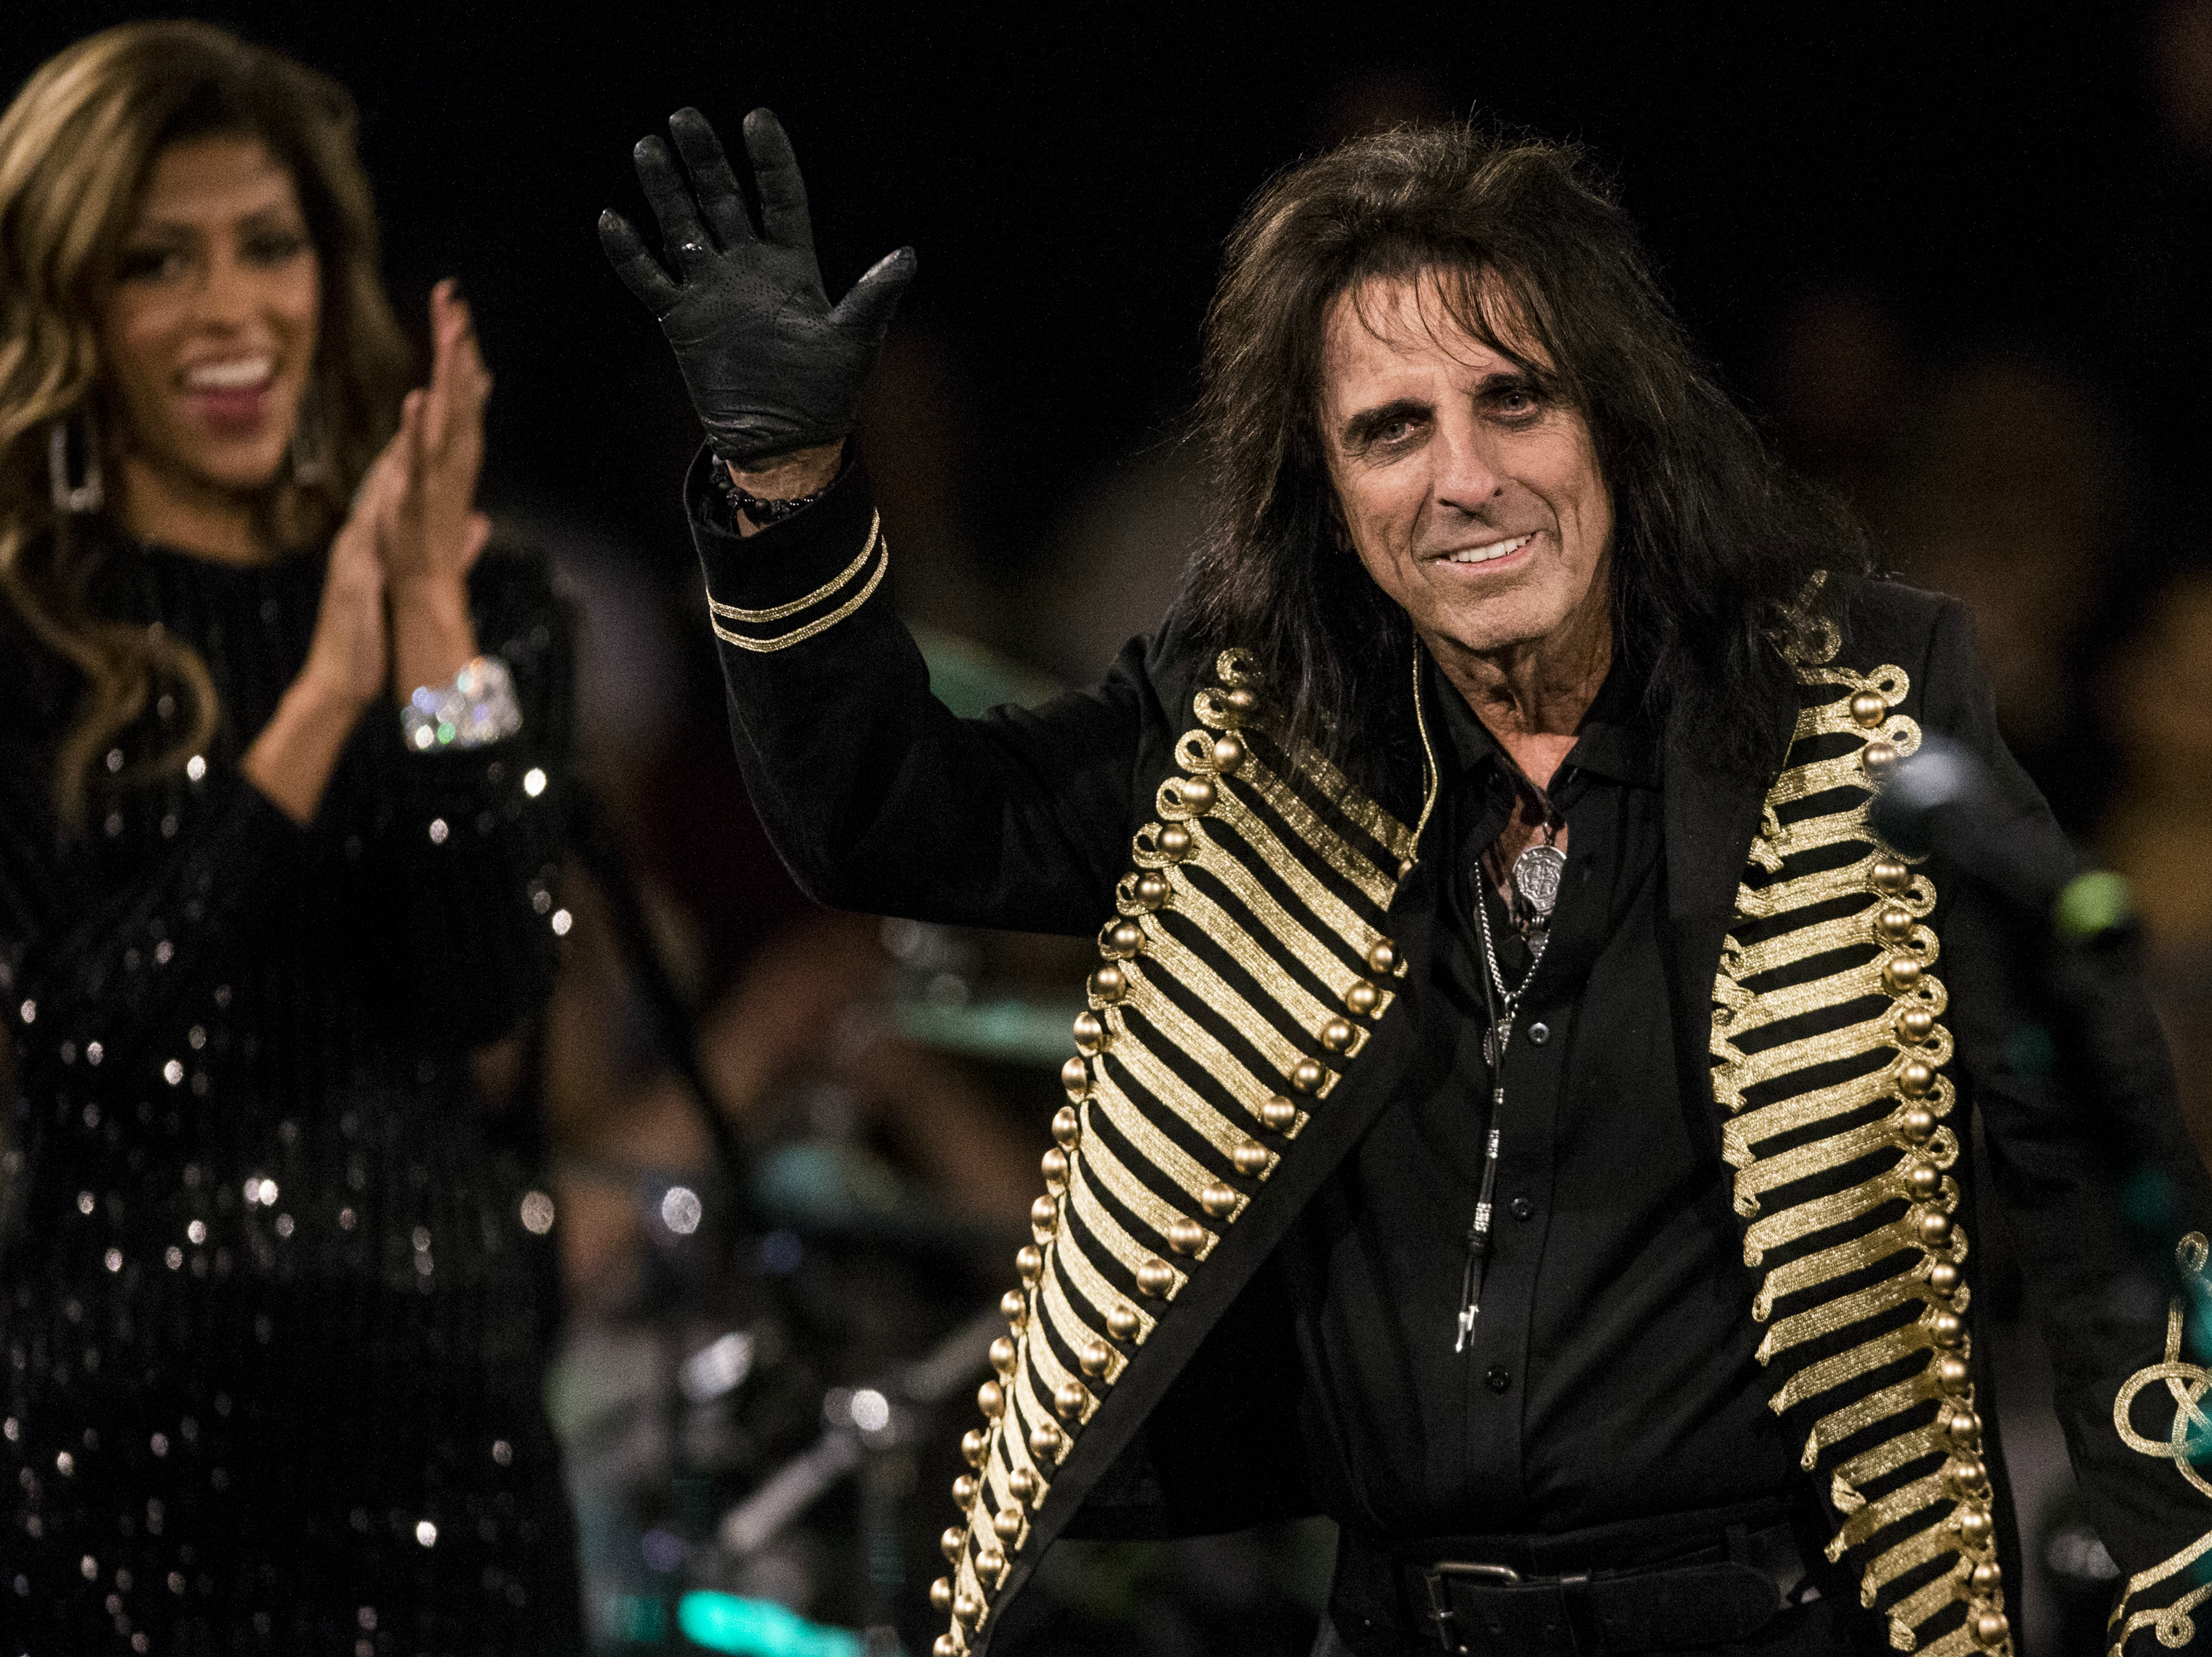 Alice Cooper waves to the crowd during the 17th annual Alice Cooper's Christmas Pudding concert, Dec. 8, 2018, at Celebrity Theatre in Phoenix.